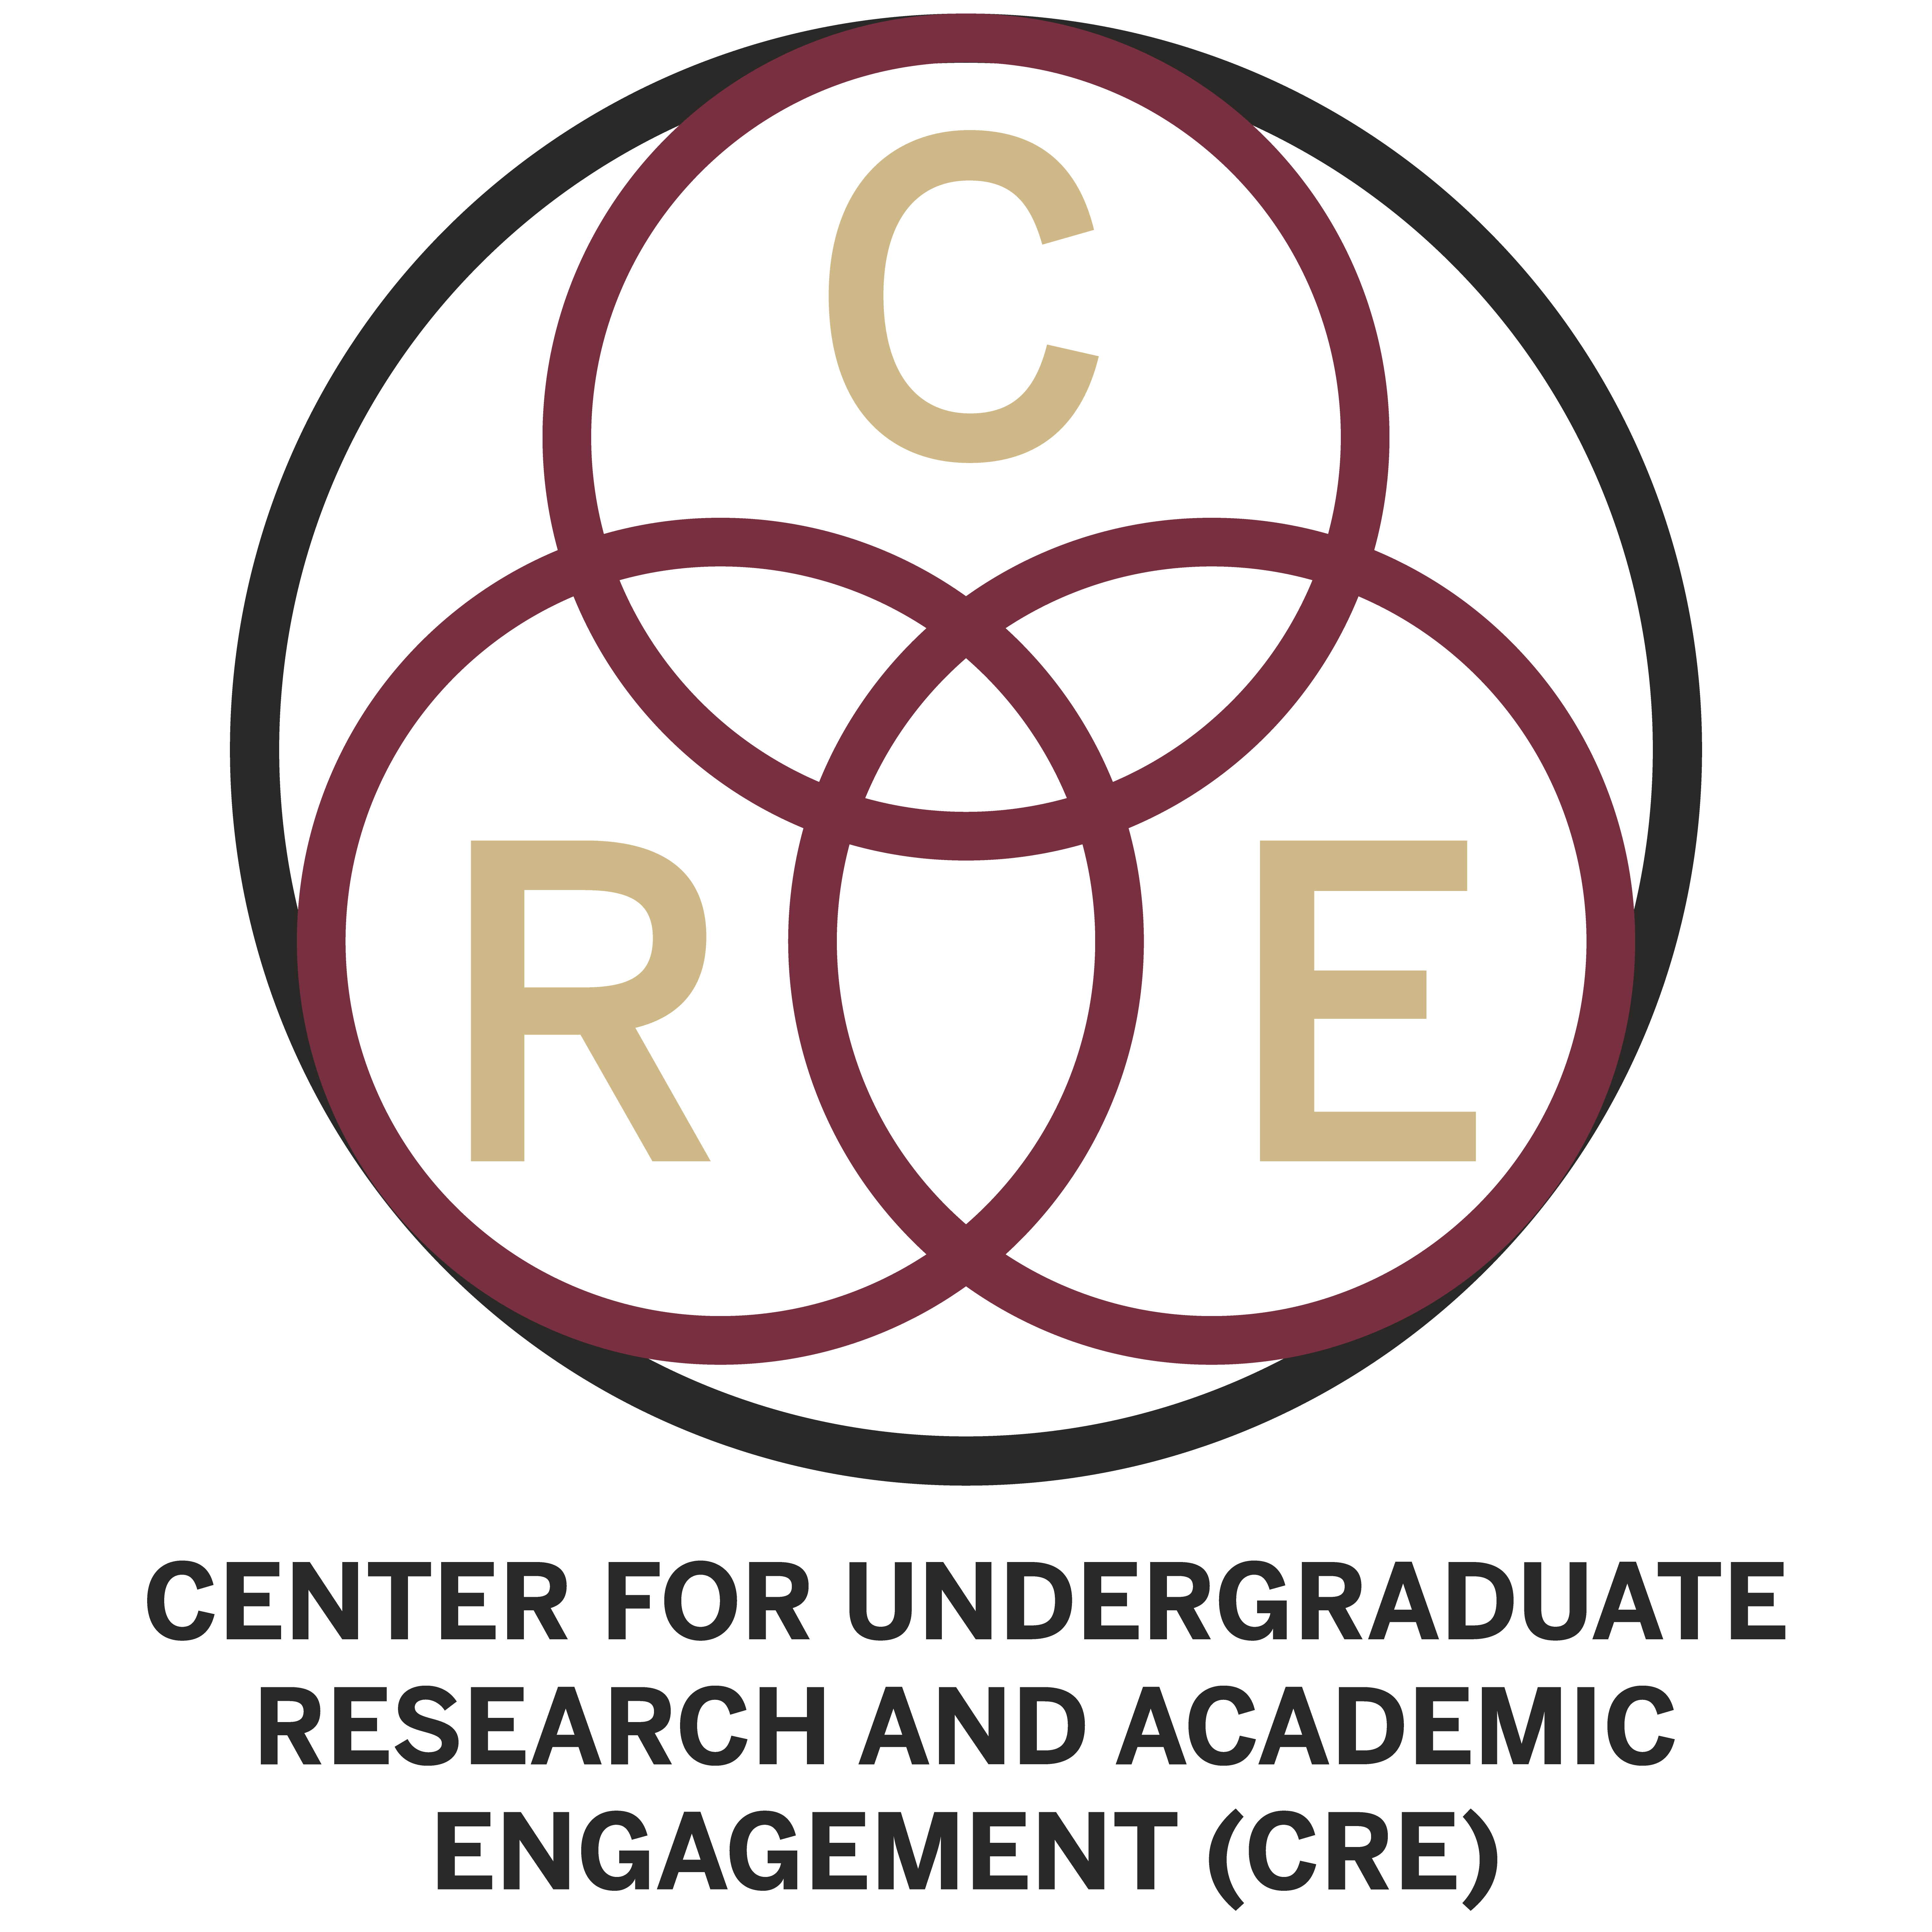 Center for Undergraduate Research and Academic Engagement logo